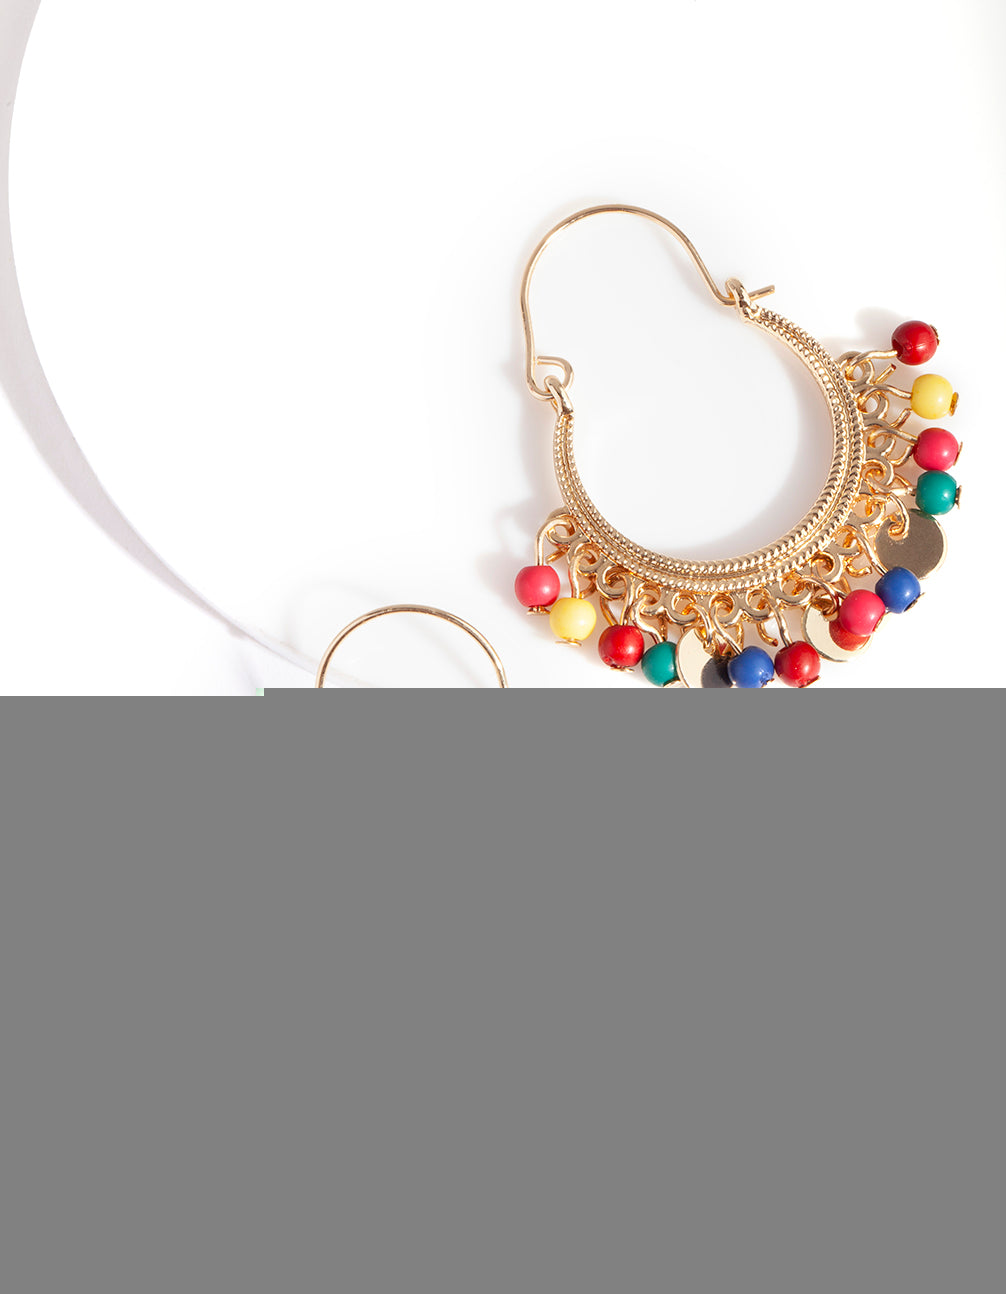 Gold Rainbow Jingle Earring